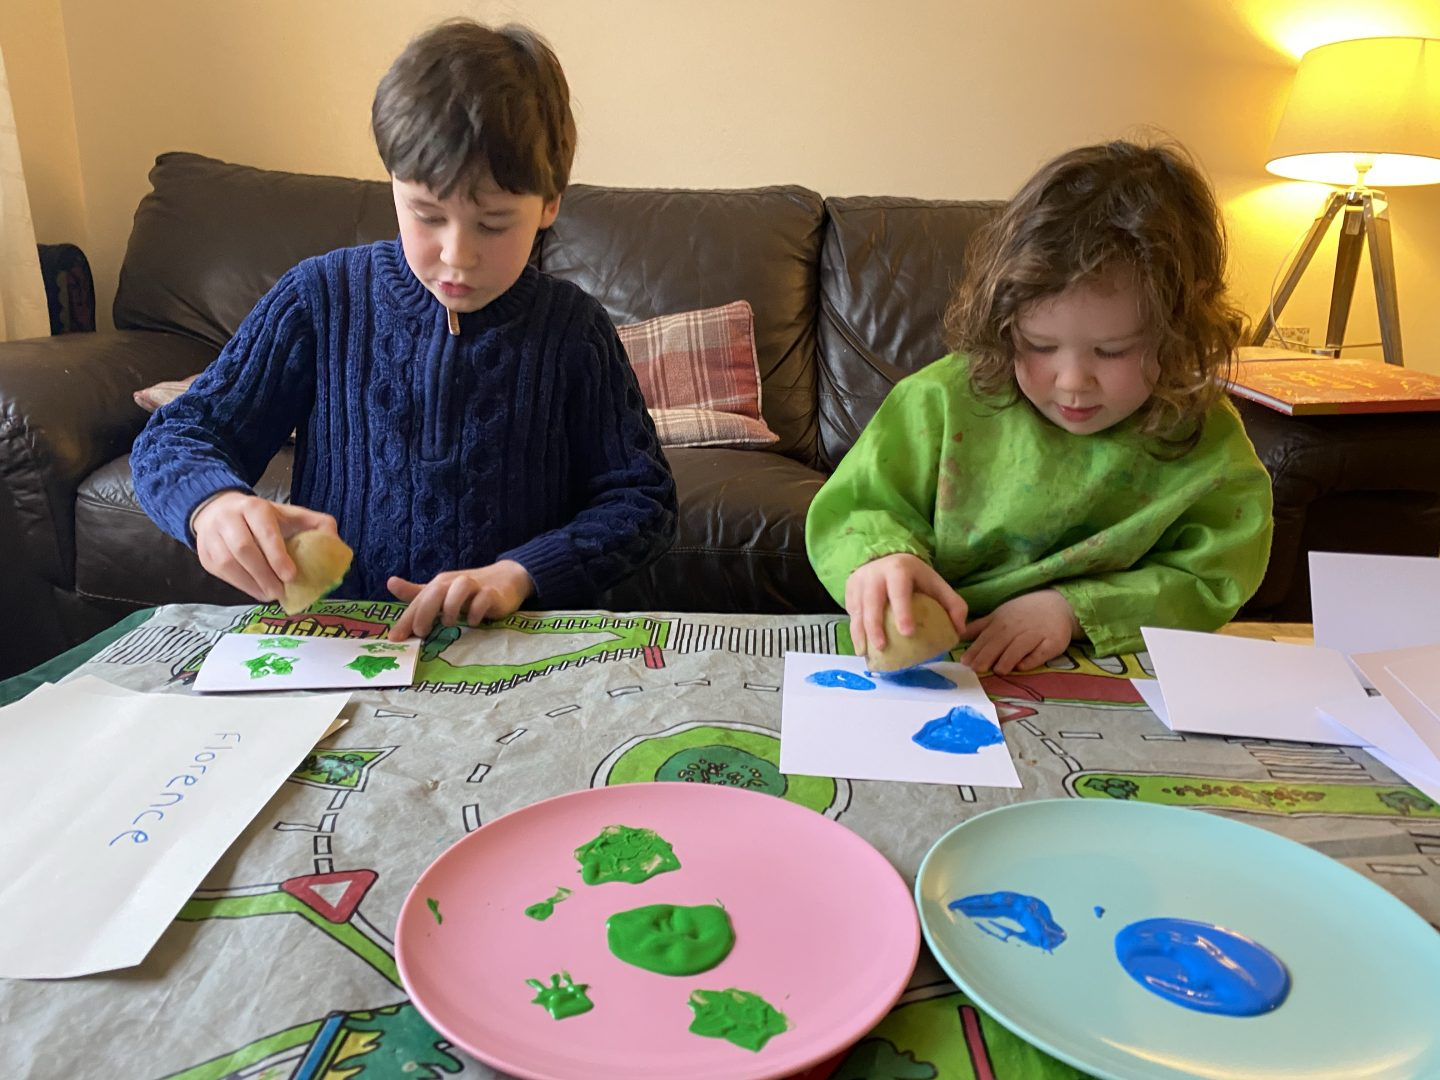 two children painting with potato stamps at a table